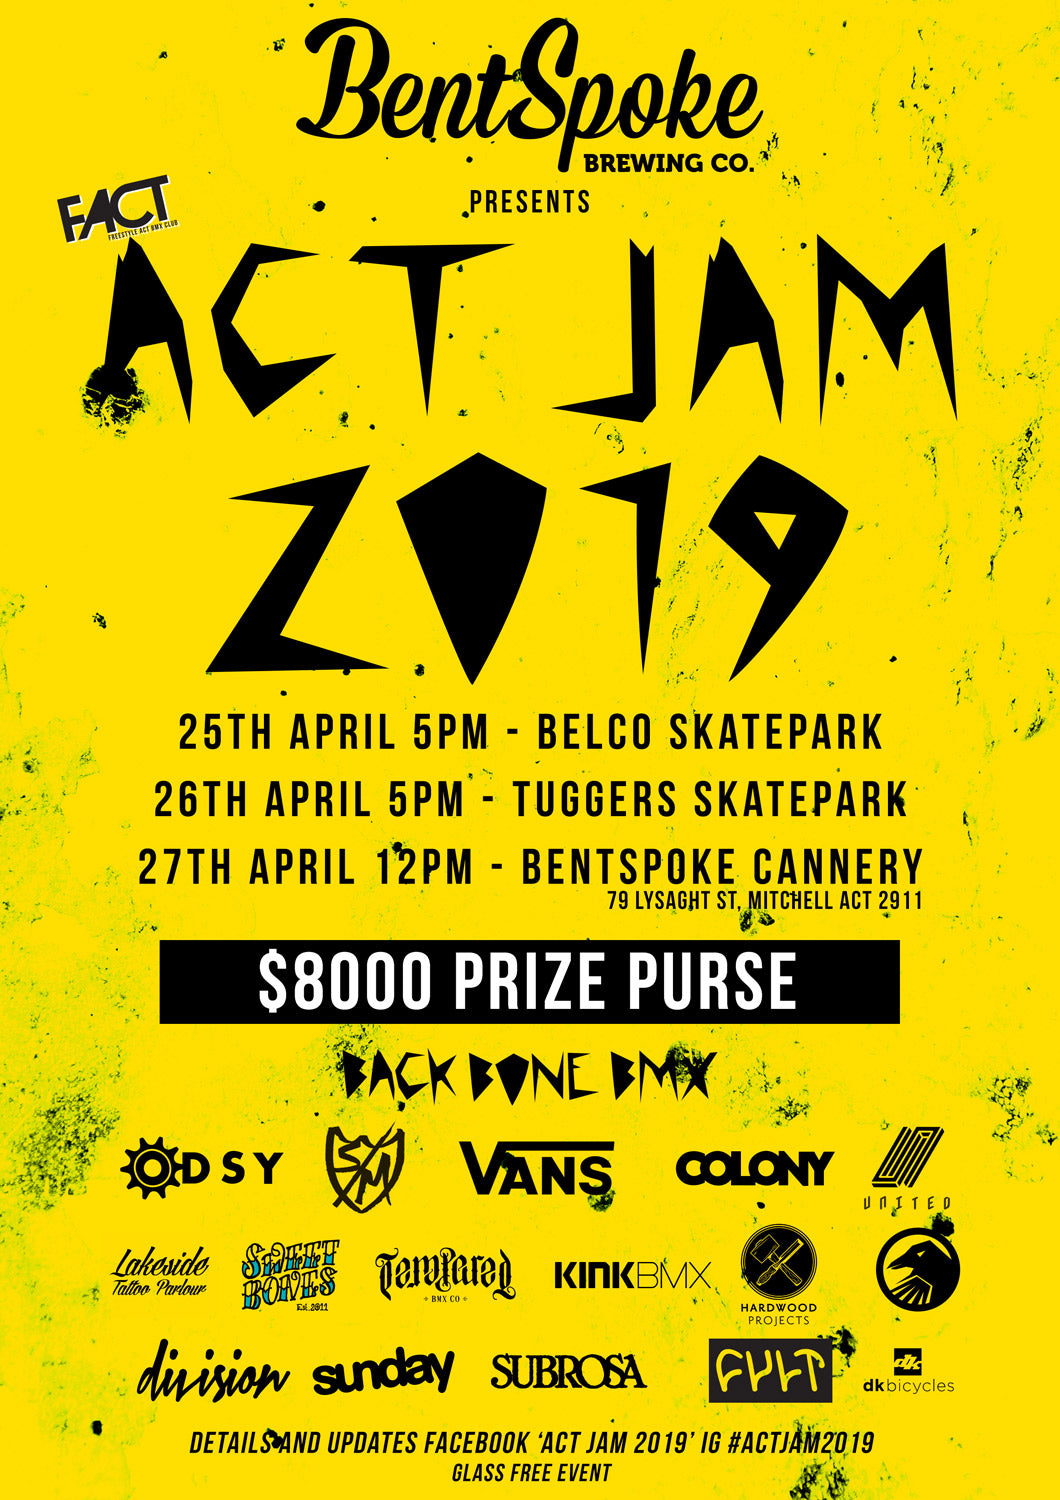 ACT jam 2019 back bone bmx